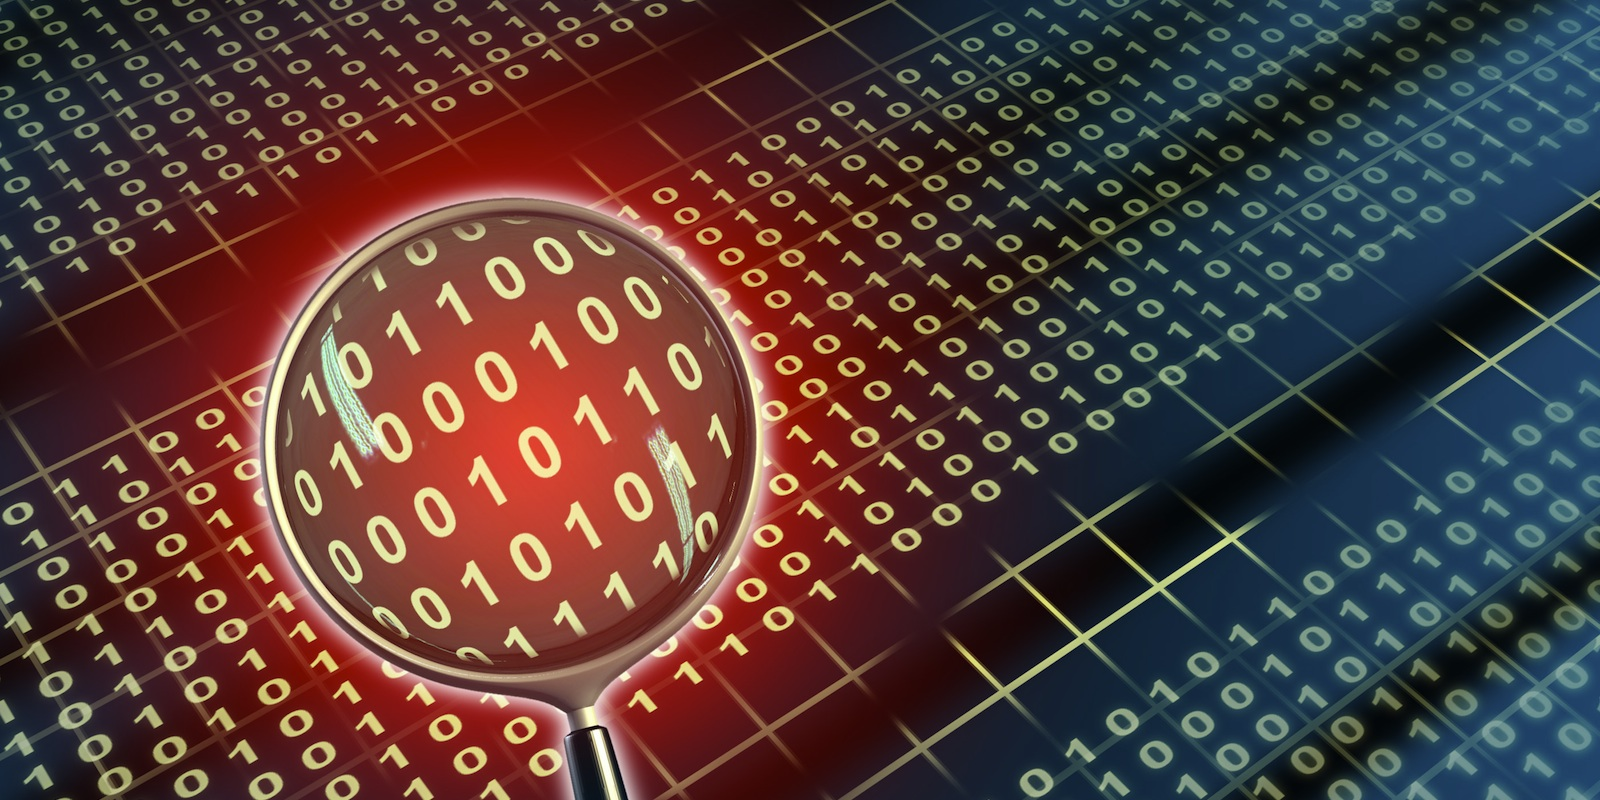 Cybersecurity for Boards: What You Need to Know Now